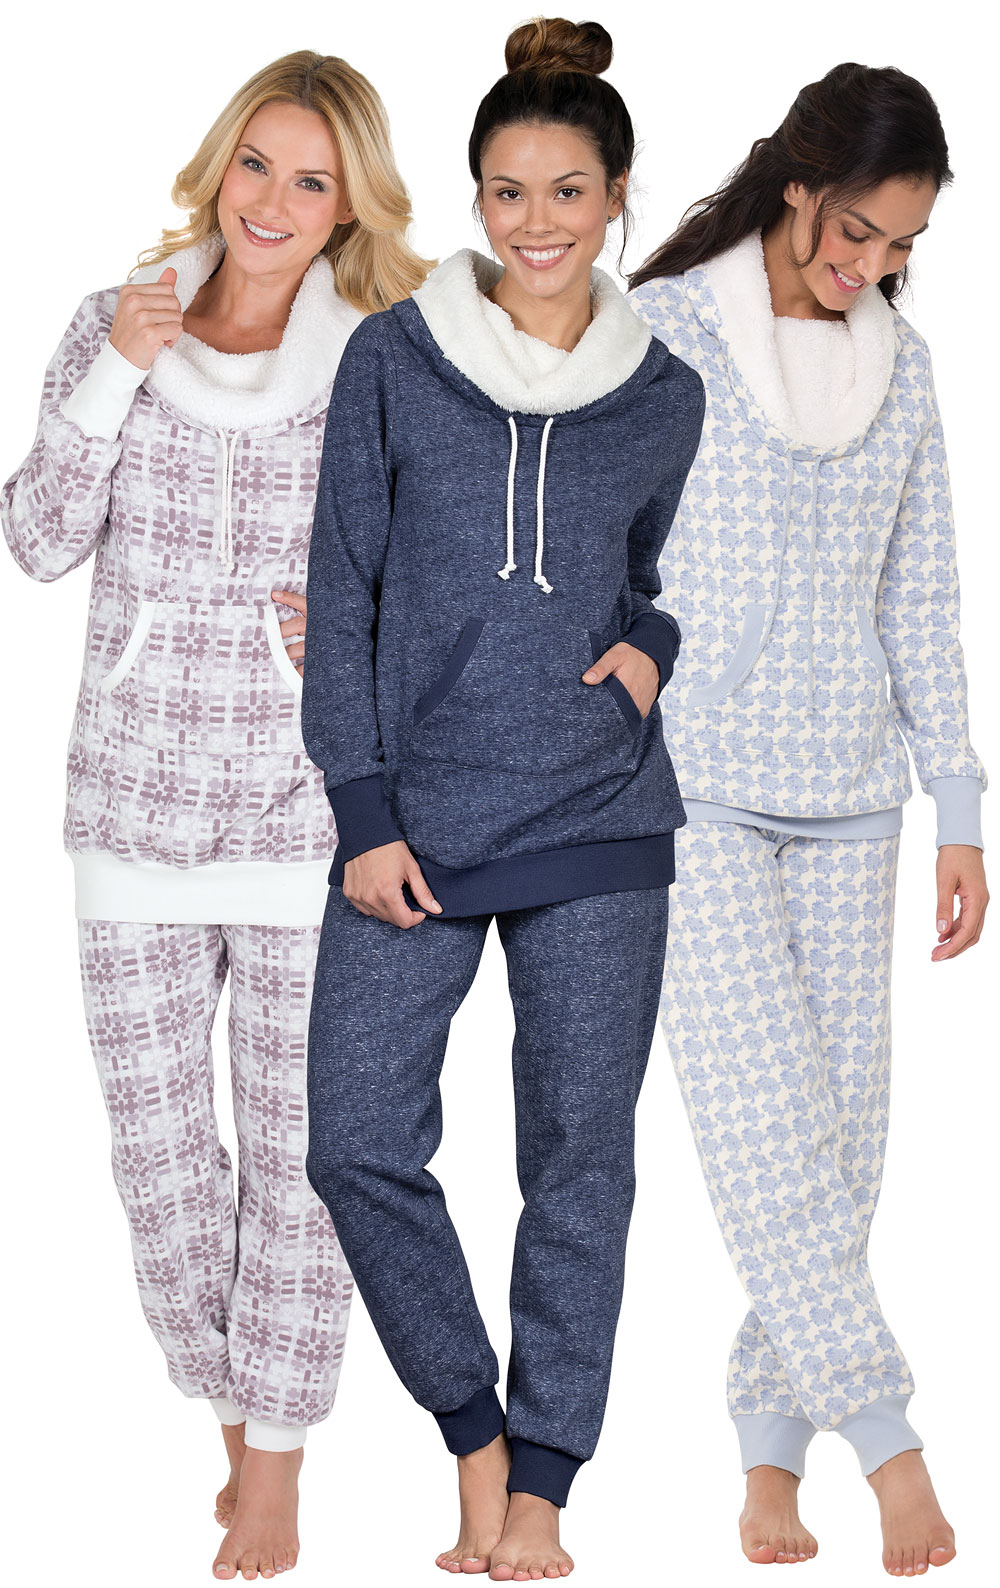 Deluxe Shearling Rollneck Pajama Gift Set in Women's Great Gift Values |  Pajamas for Women | PajamaGram